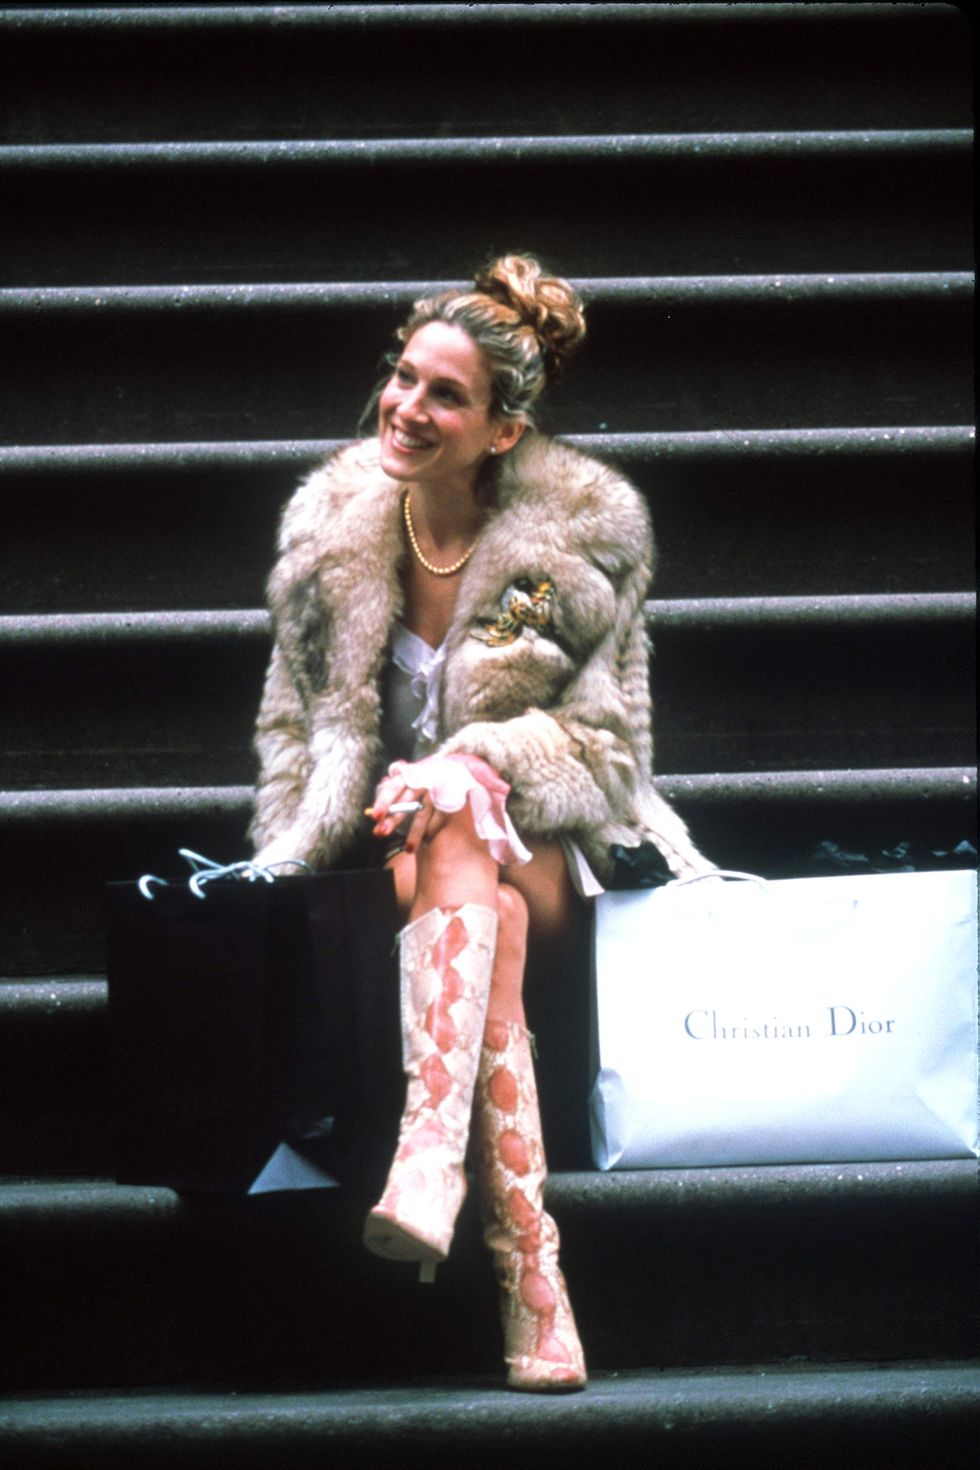 - A shoe lover, Carrie always had on expensive designer kicks. In one episode, she said that she spent over $40,000 on shoes. Commitment at its finest.